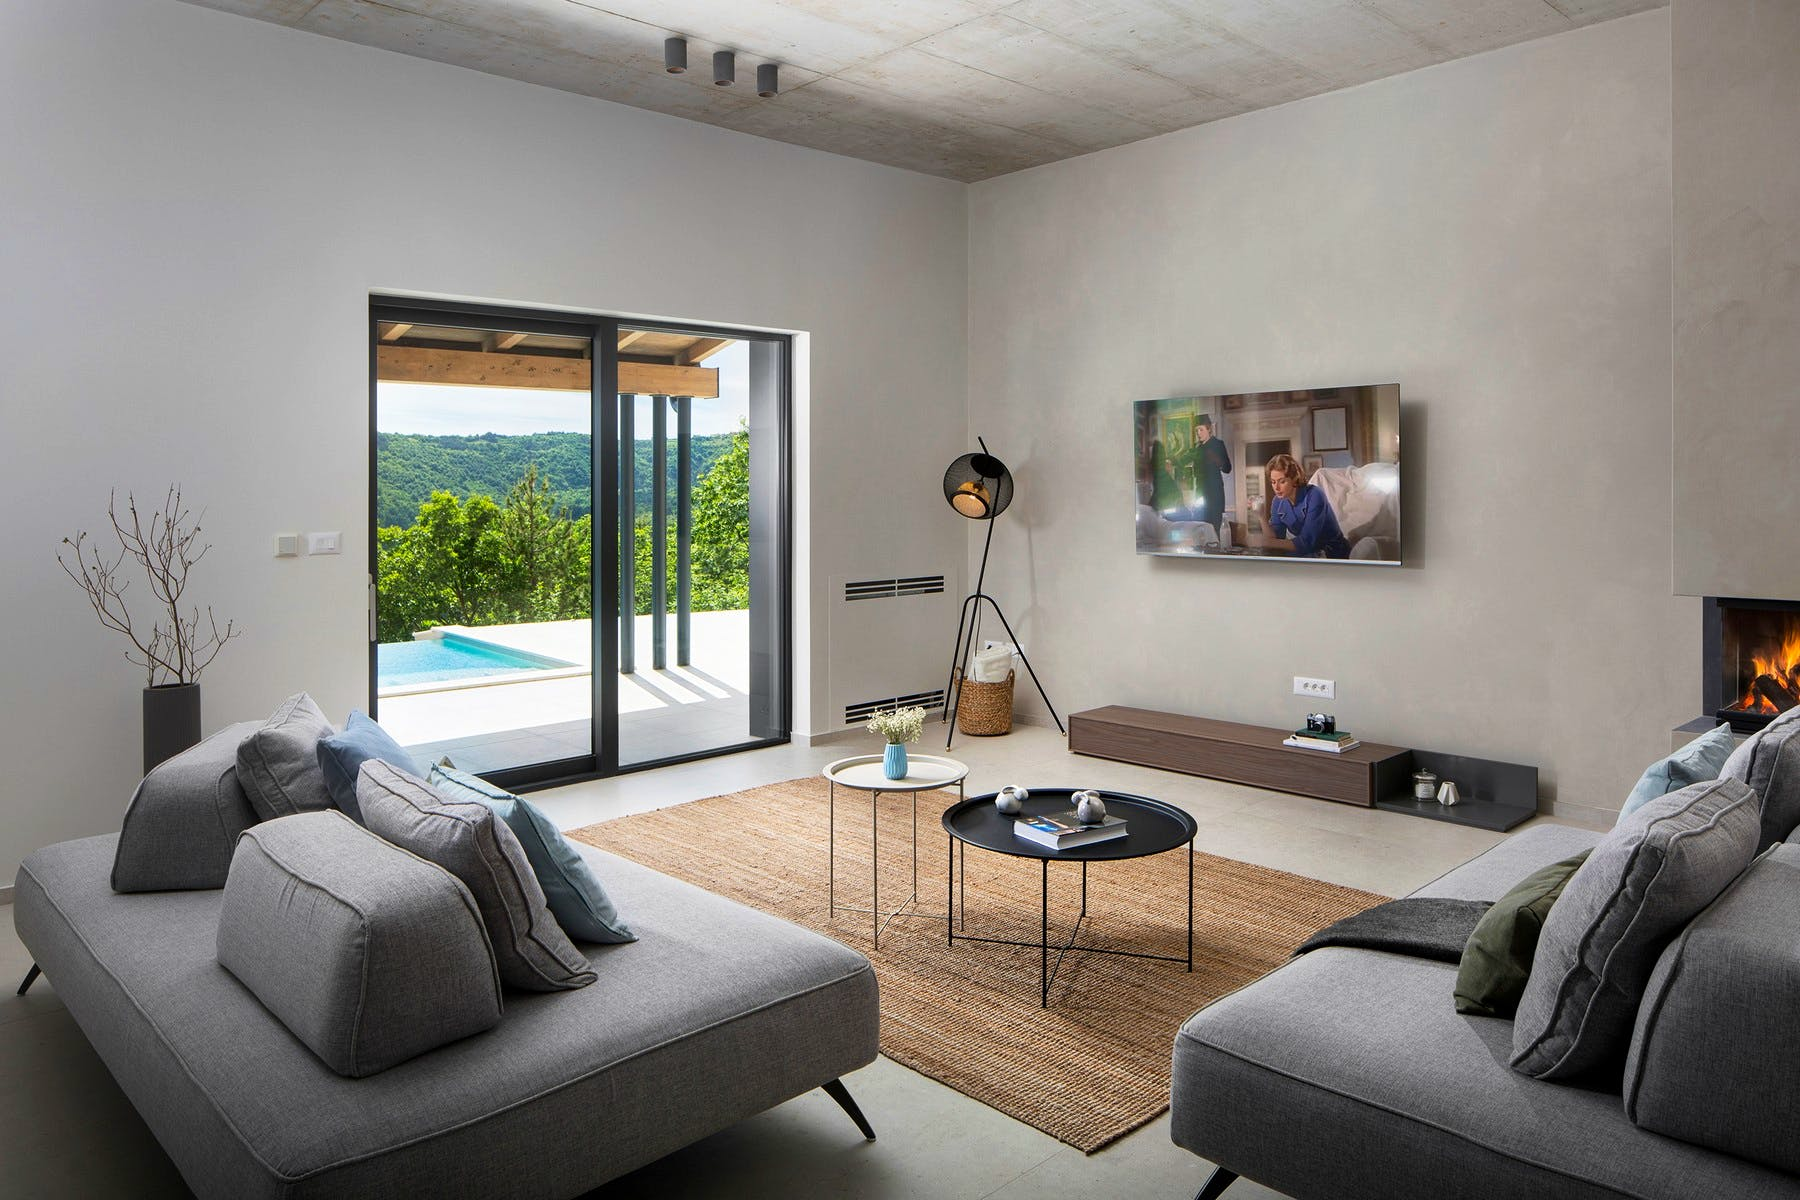 Modern interior of soothing tones